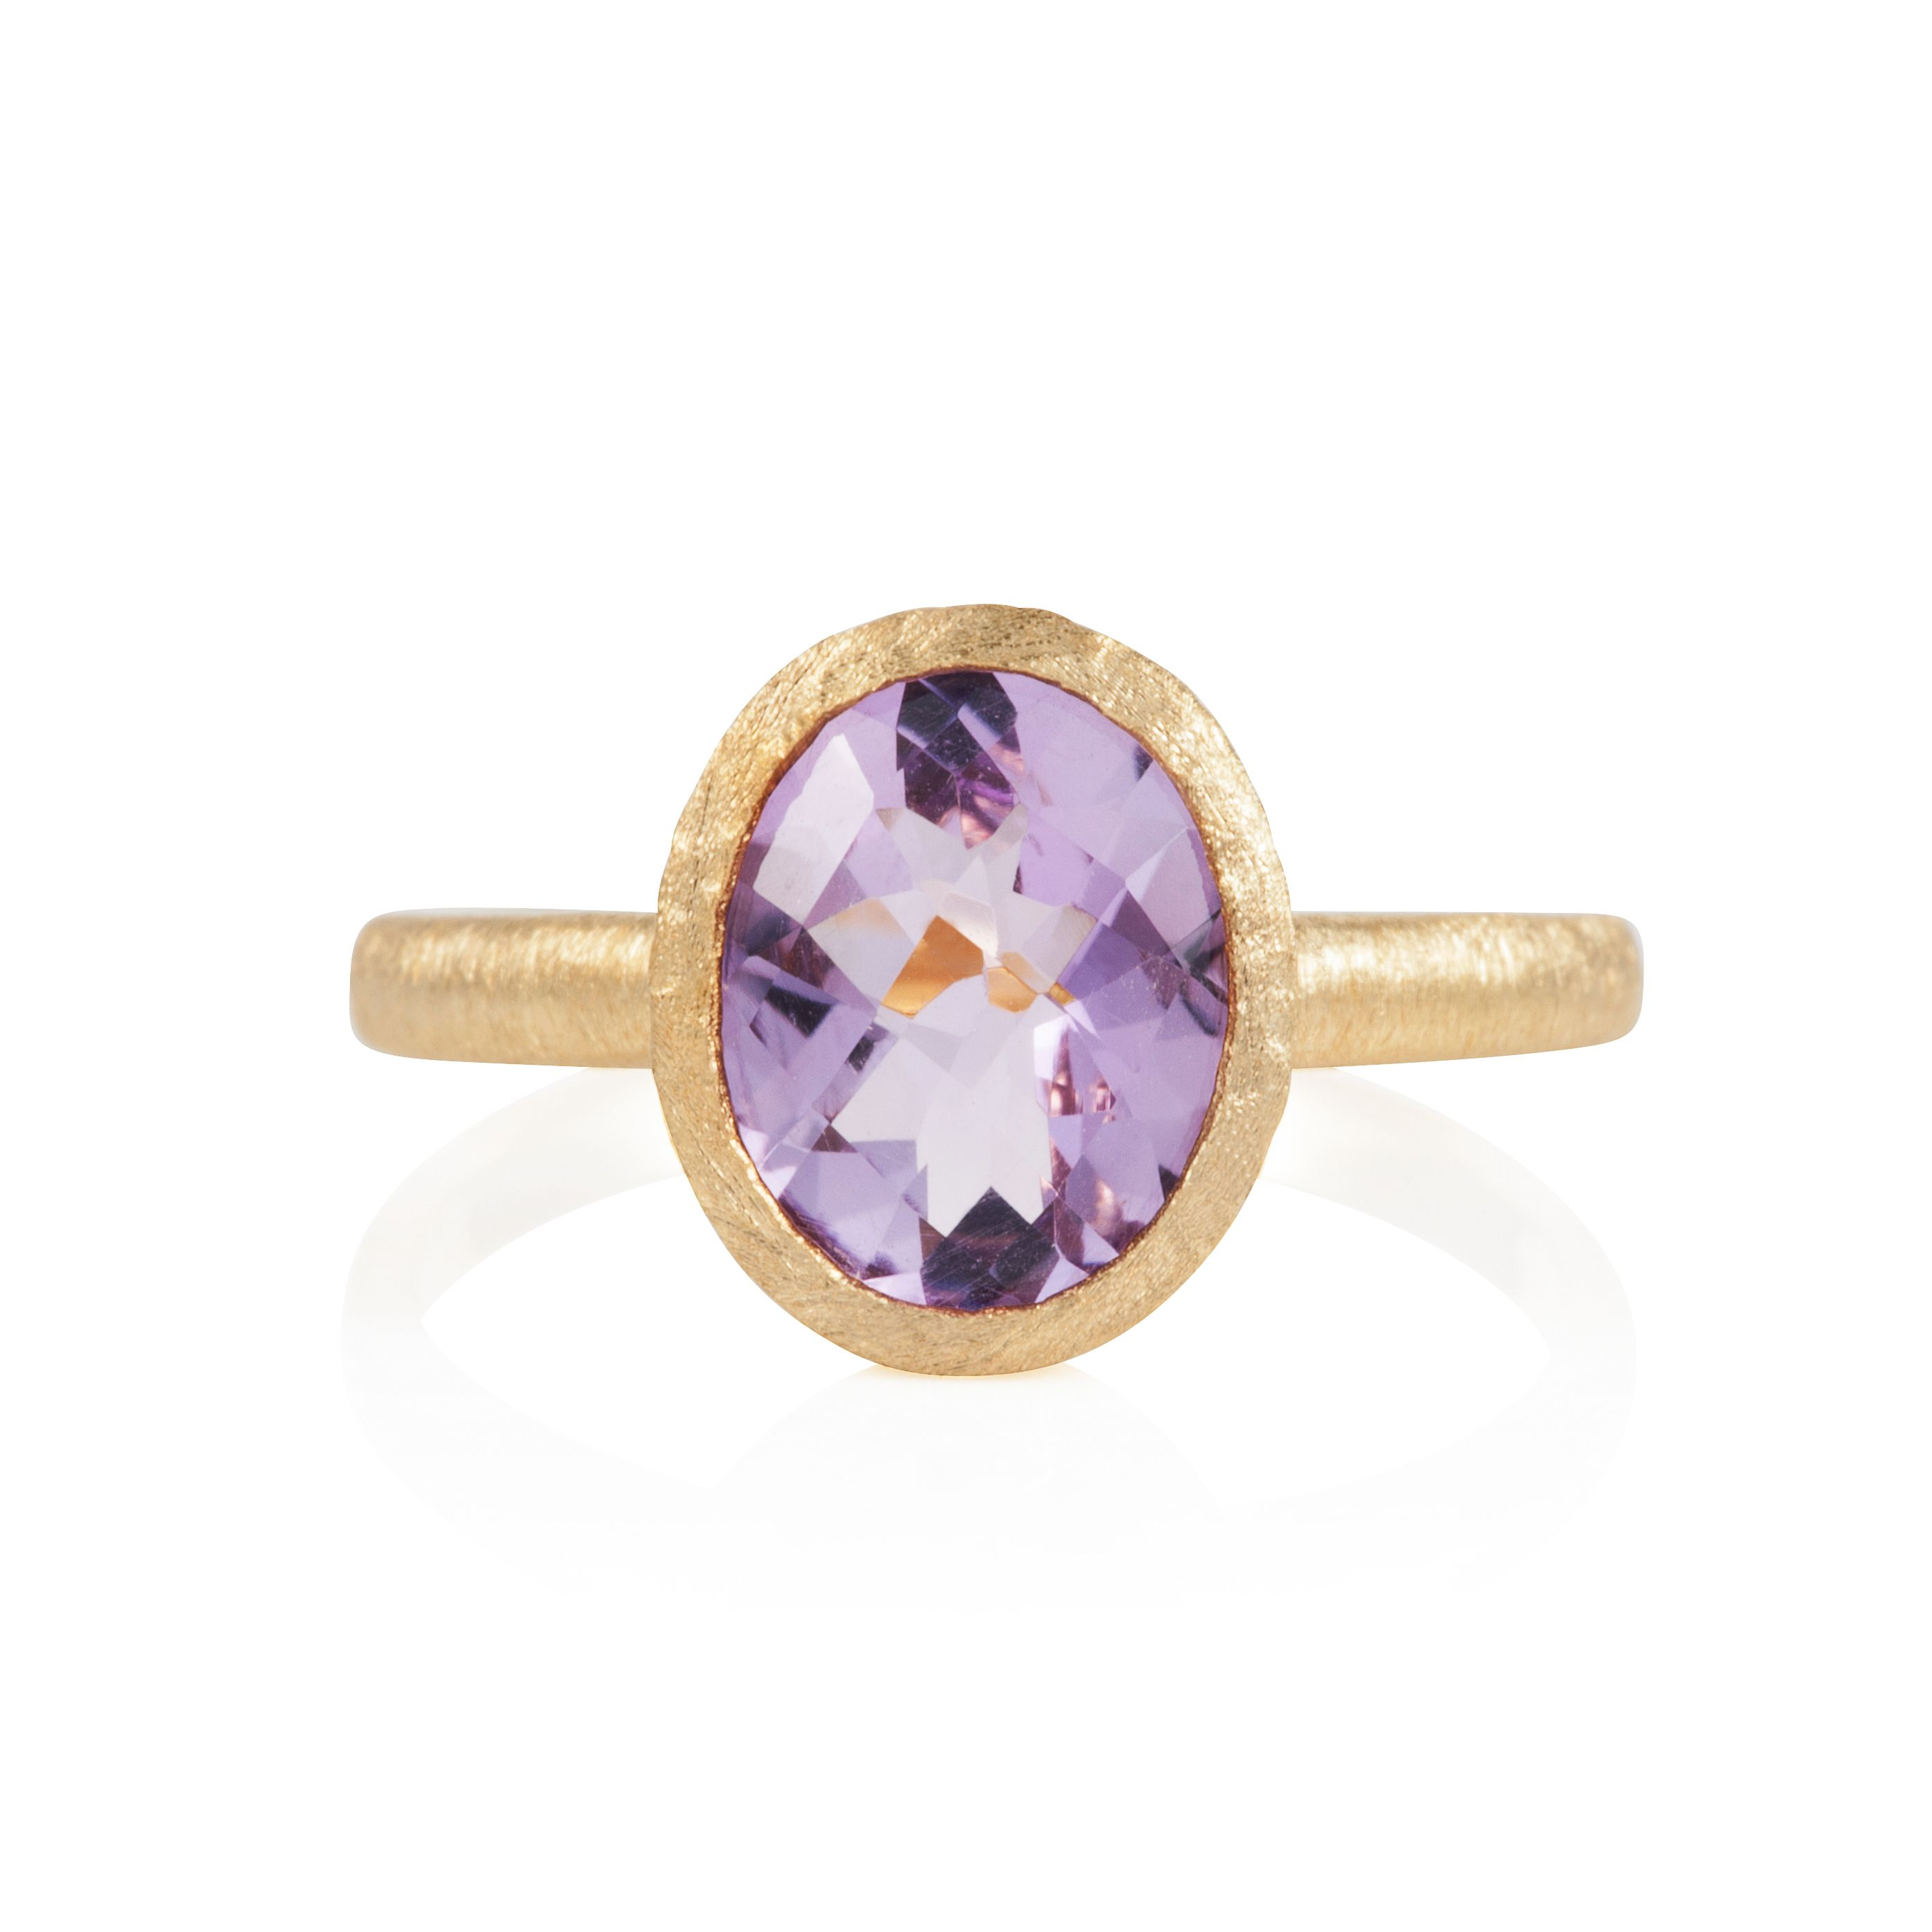 18ct gold plated sterling silver 2.25ct amethyst